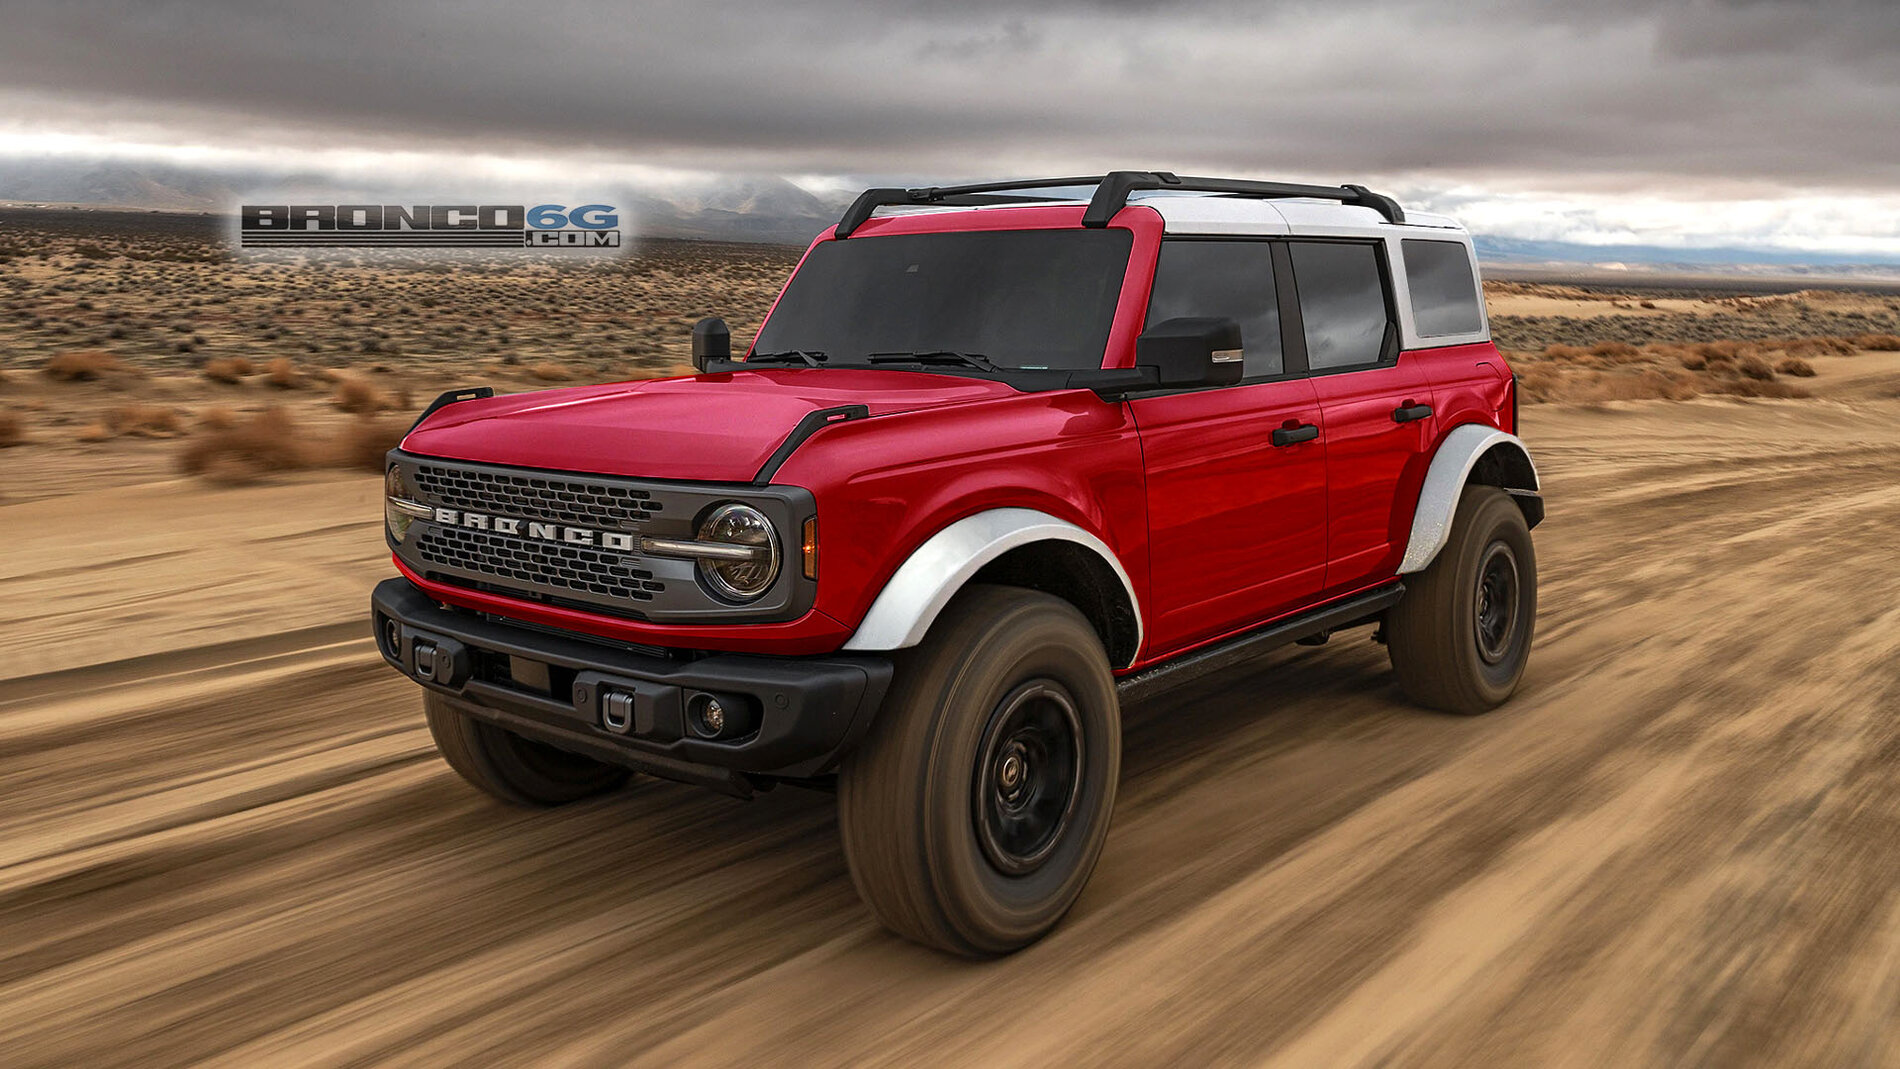 2021 Ford Bronco Sasquatch Rapid-Red-white-roof-fendersBronco6G.com.jpg